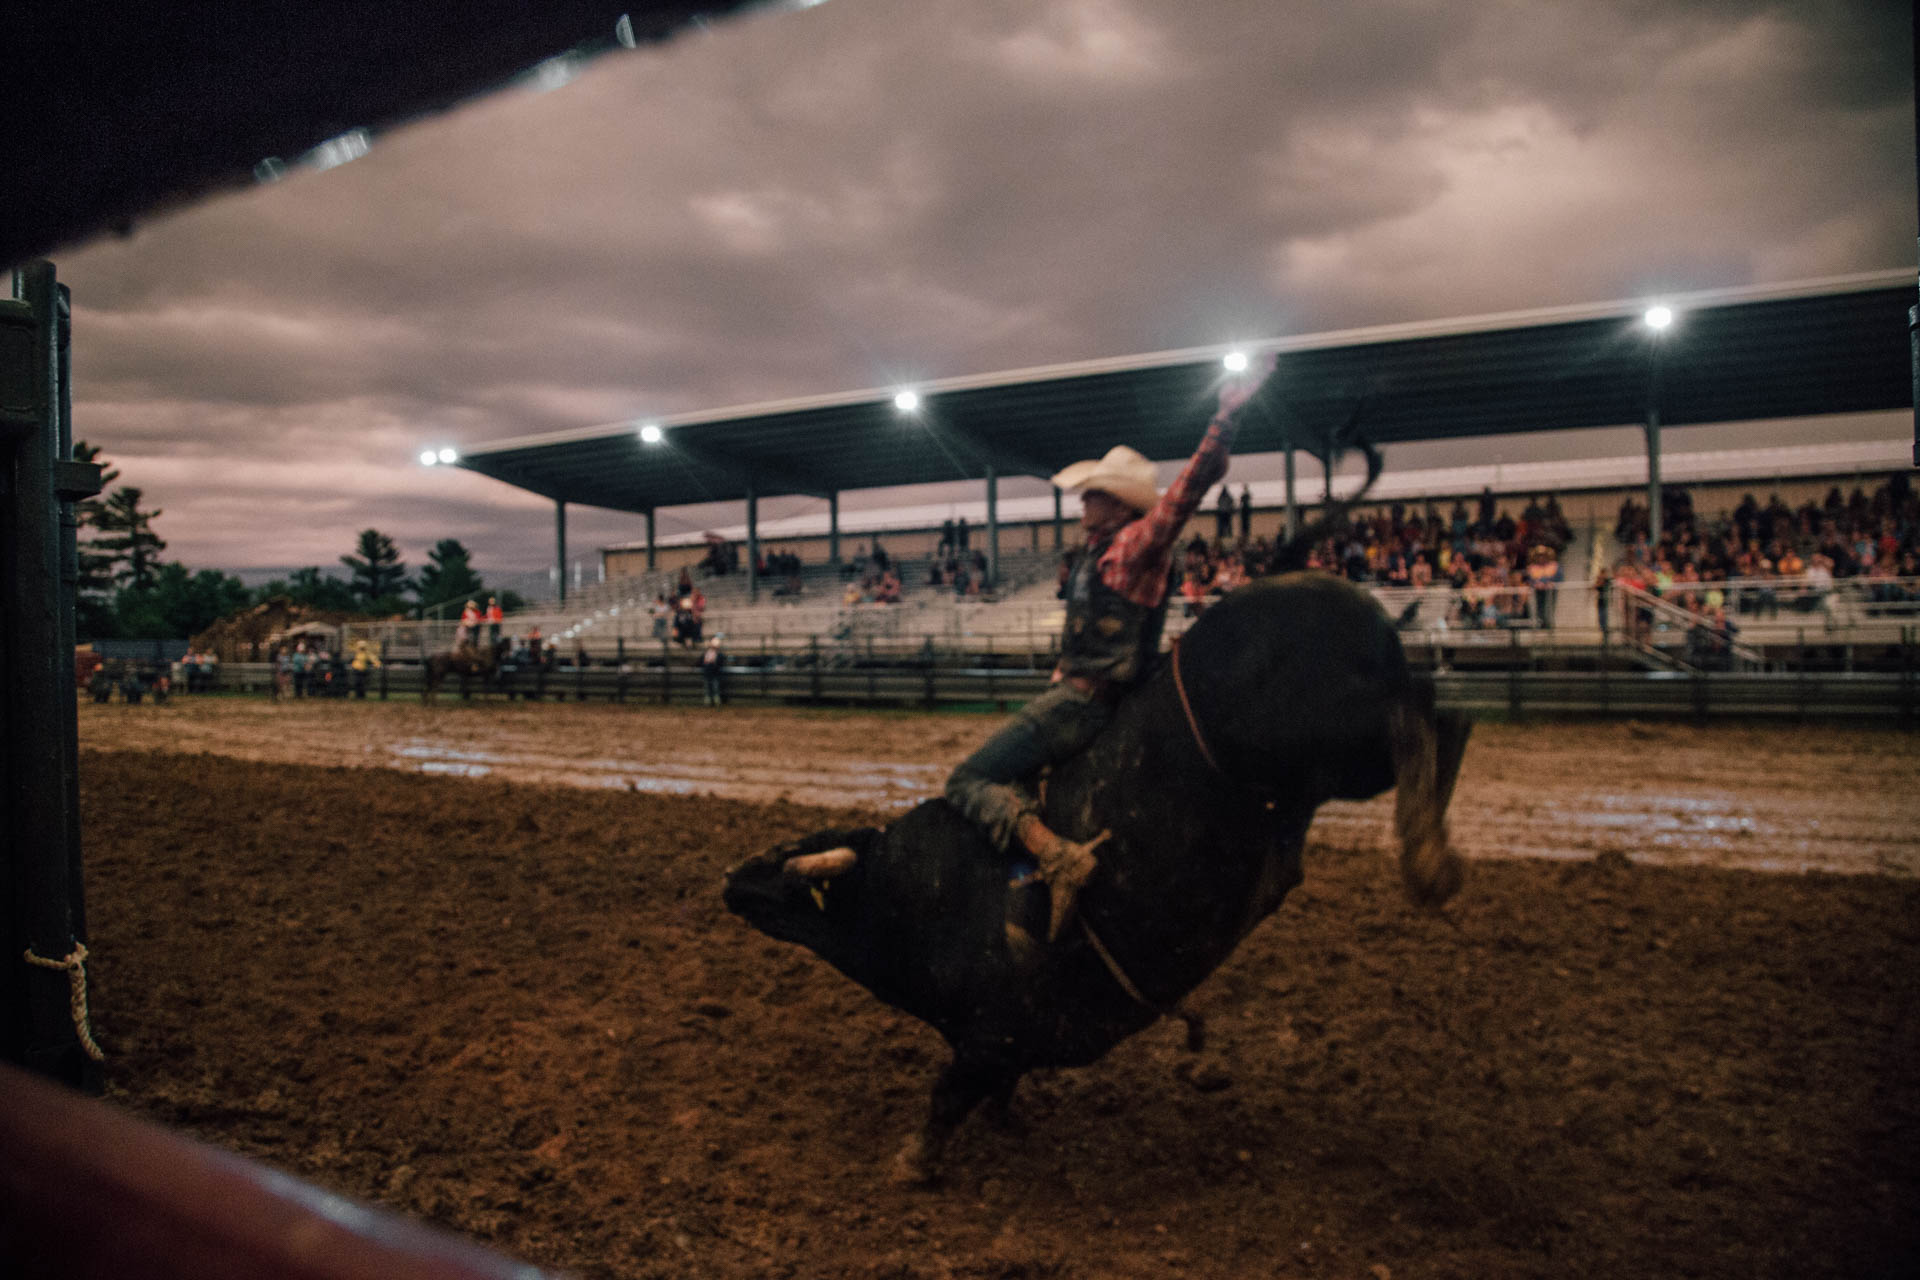 eight-second-bull-ride-arm-up-muddy-arena-a5086